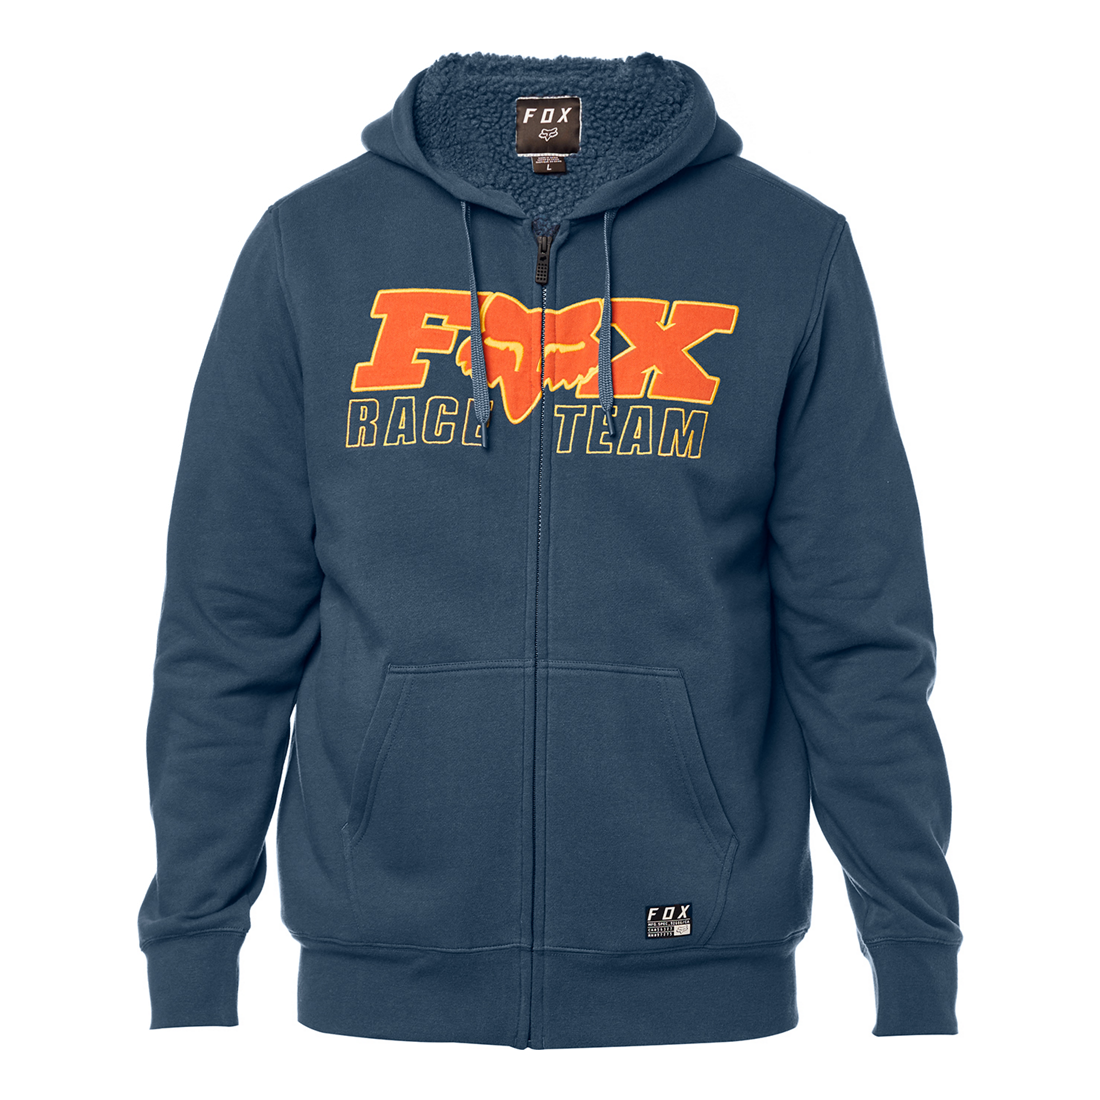 SWEAT FOX RACE TEAM SHERPA navy